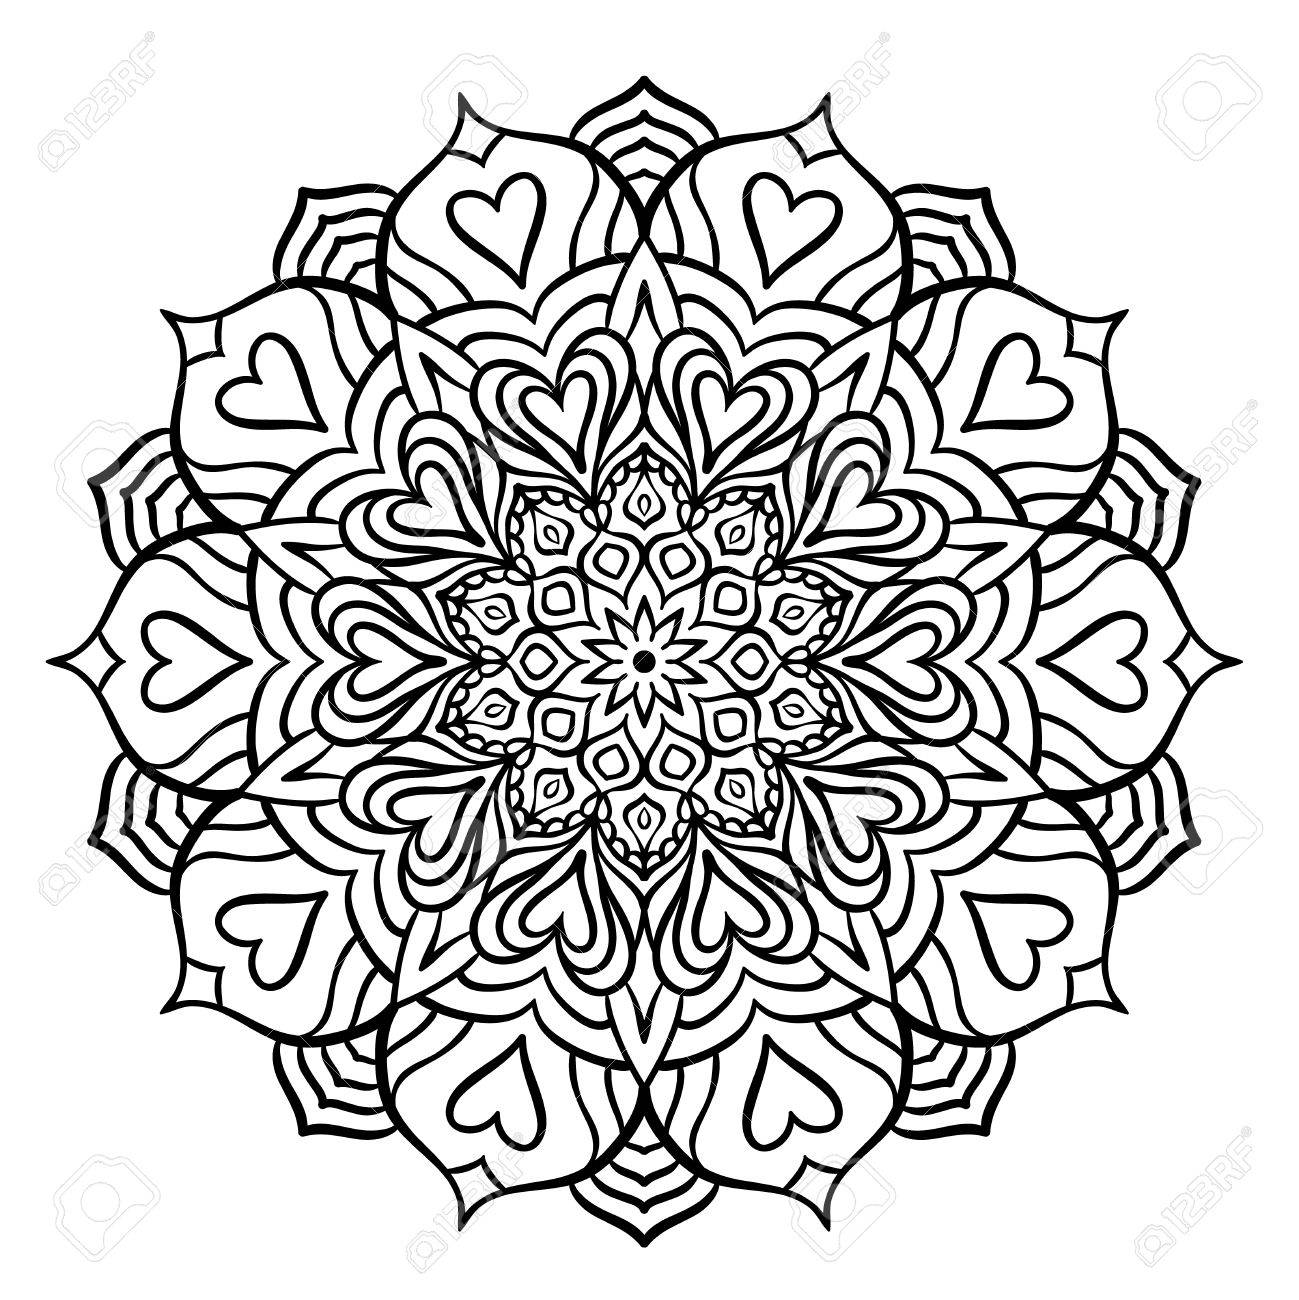 Intricate Mandala Design Black With Hearts For Coloring Line Isolated On White Background Outline